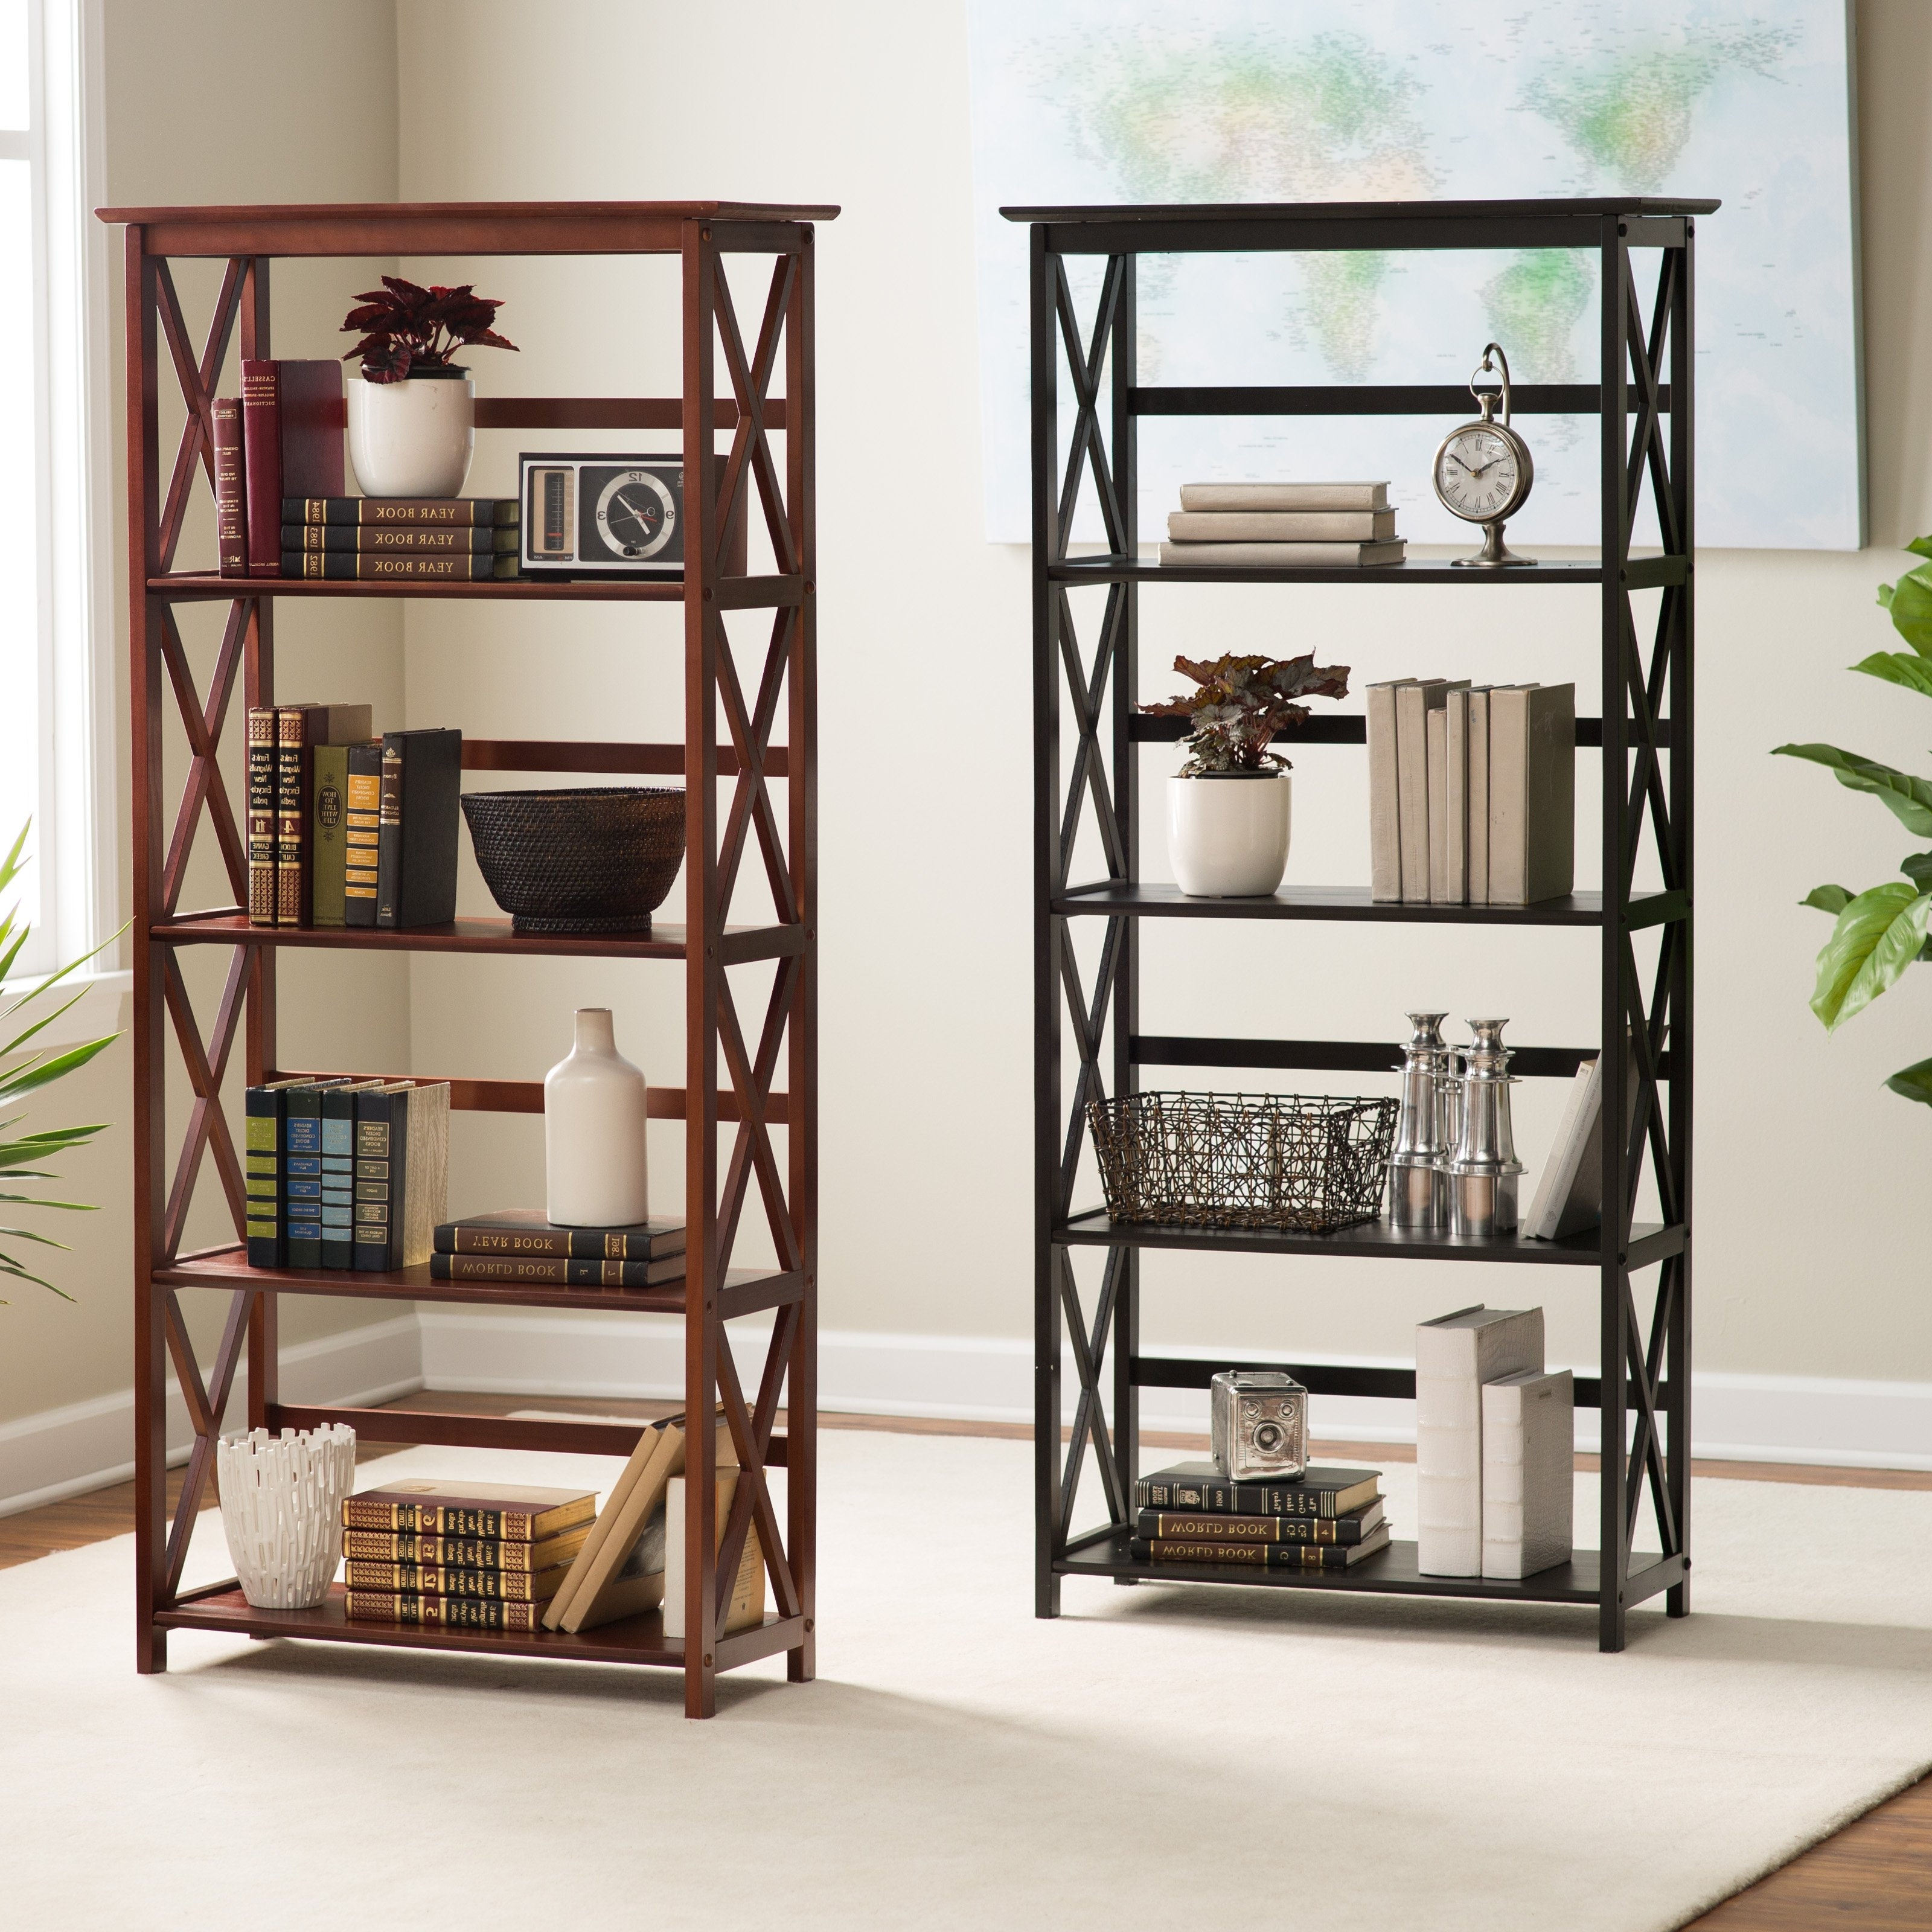 bookcase best decorations interior ideas home decorative with of decorating xmas small bookcases depot